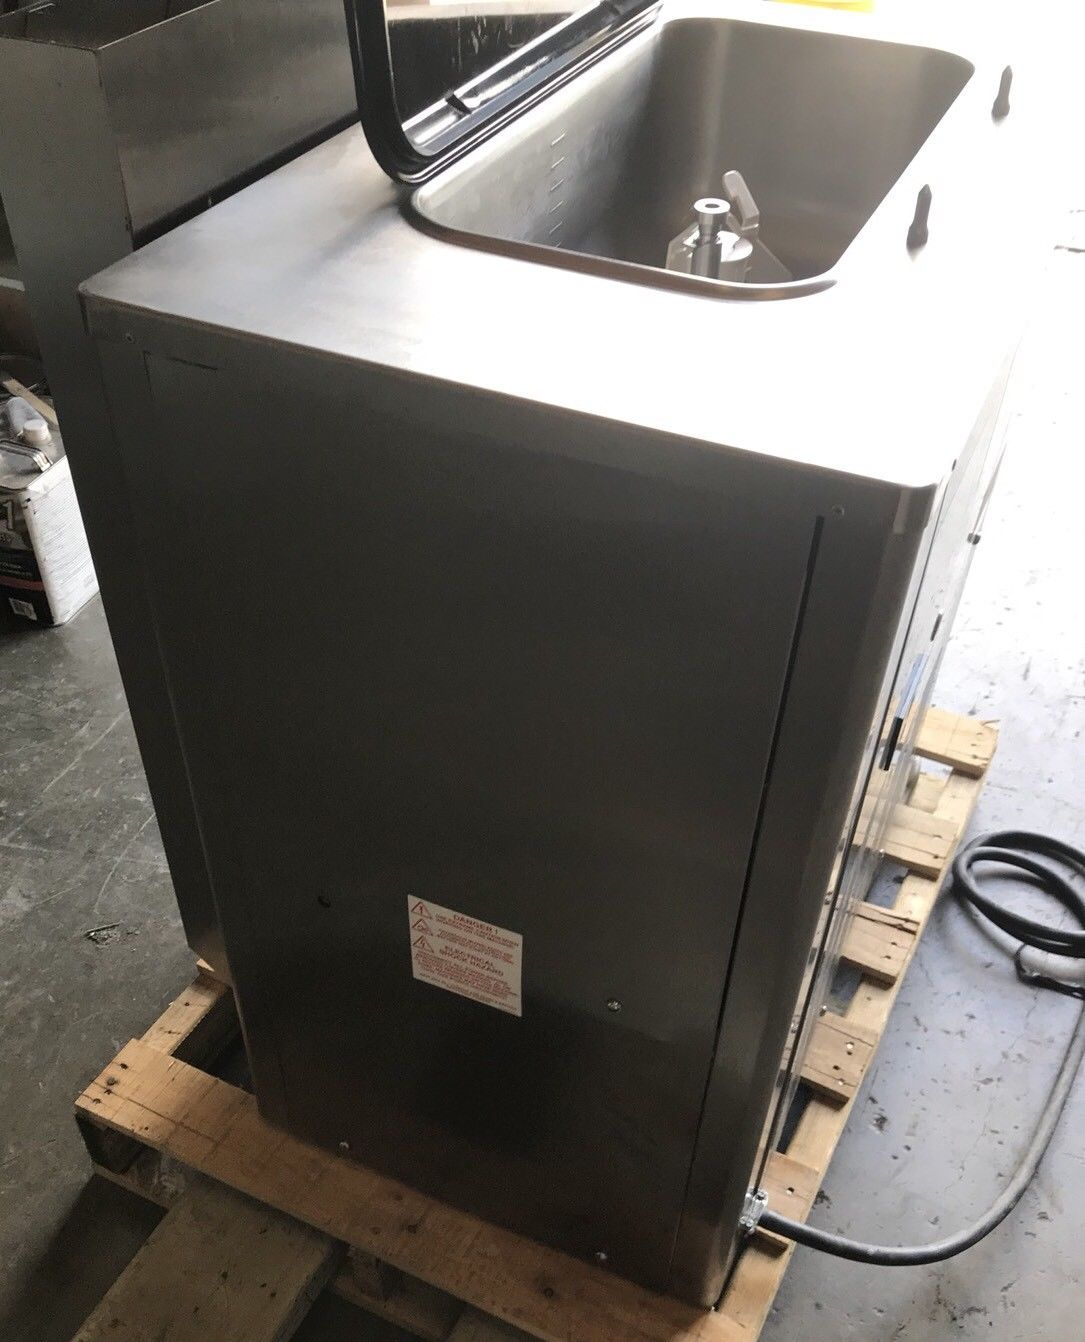 Taylor C709-27 Single Phase Mfg 2013